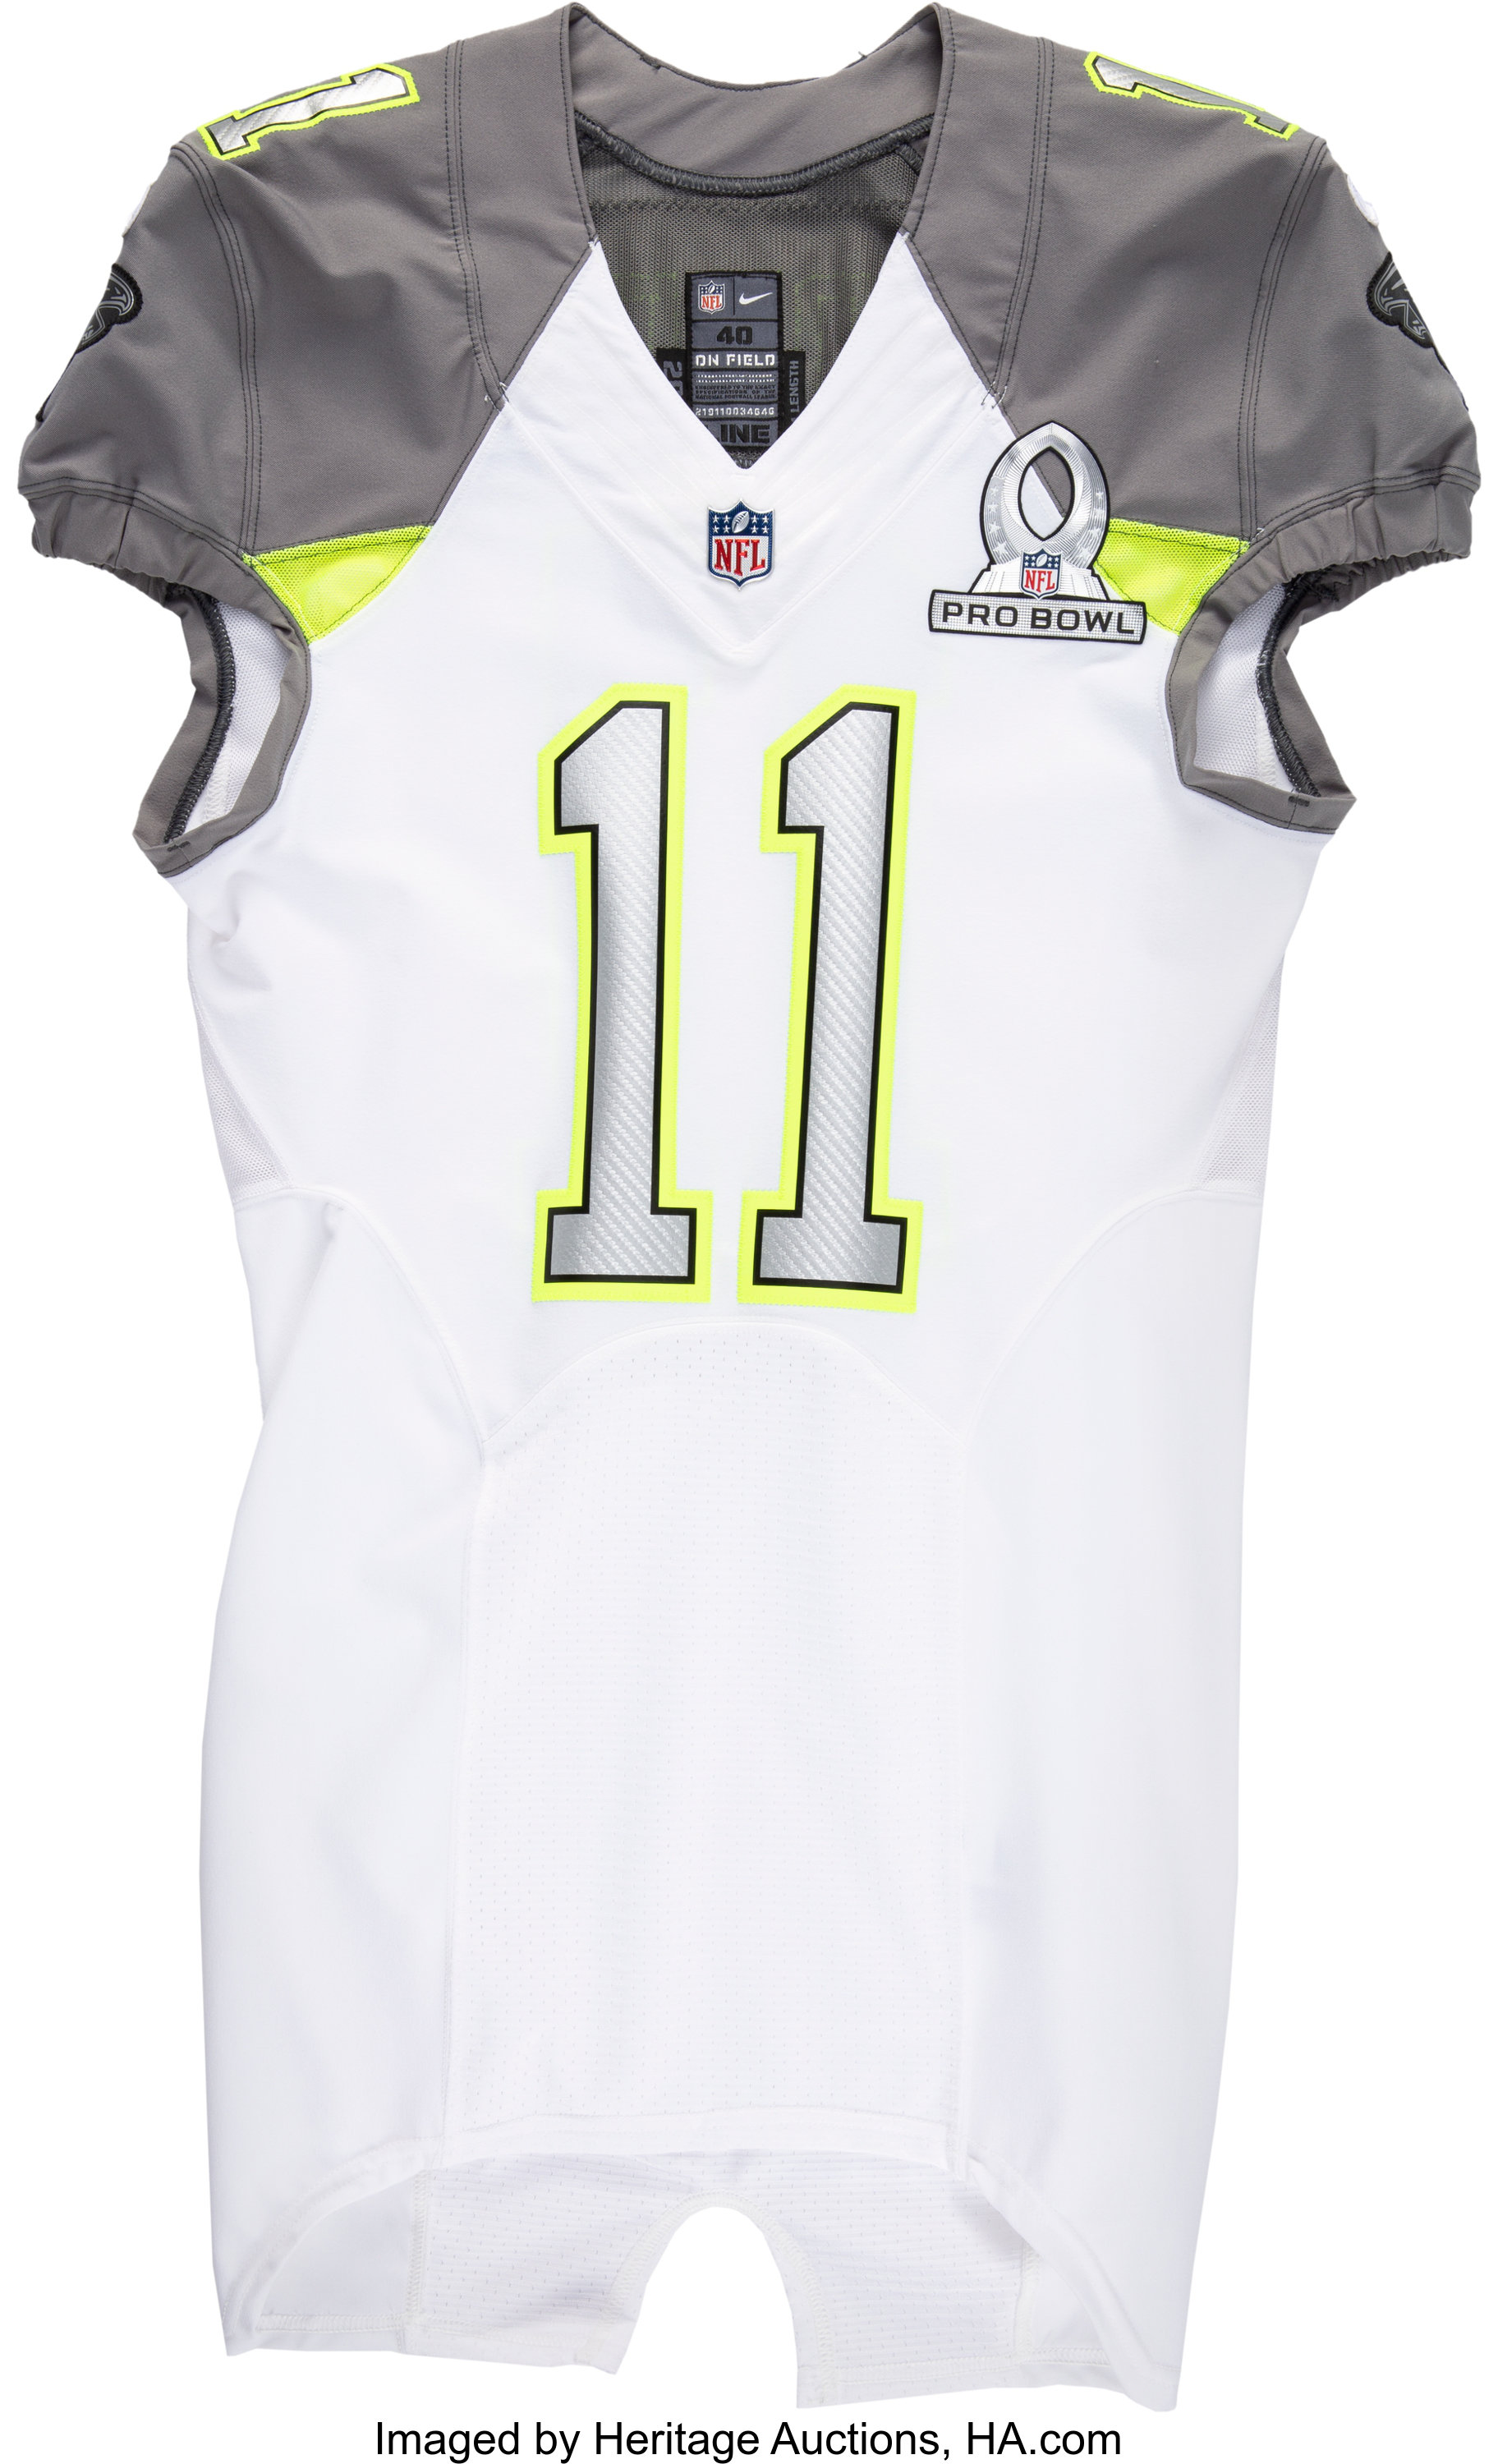 2015 Julio Jones Game Issued Pro Bowl Jersey Football Lot 57717 Heritage Auctions